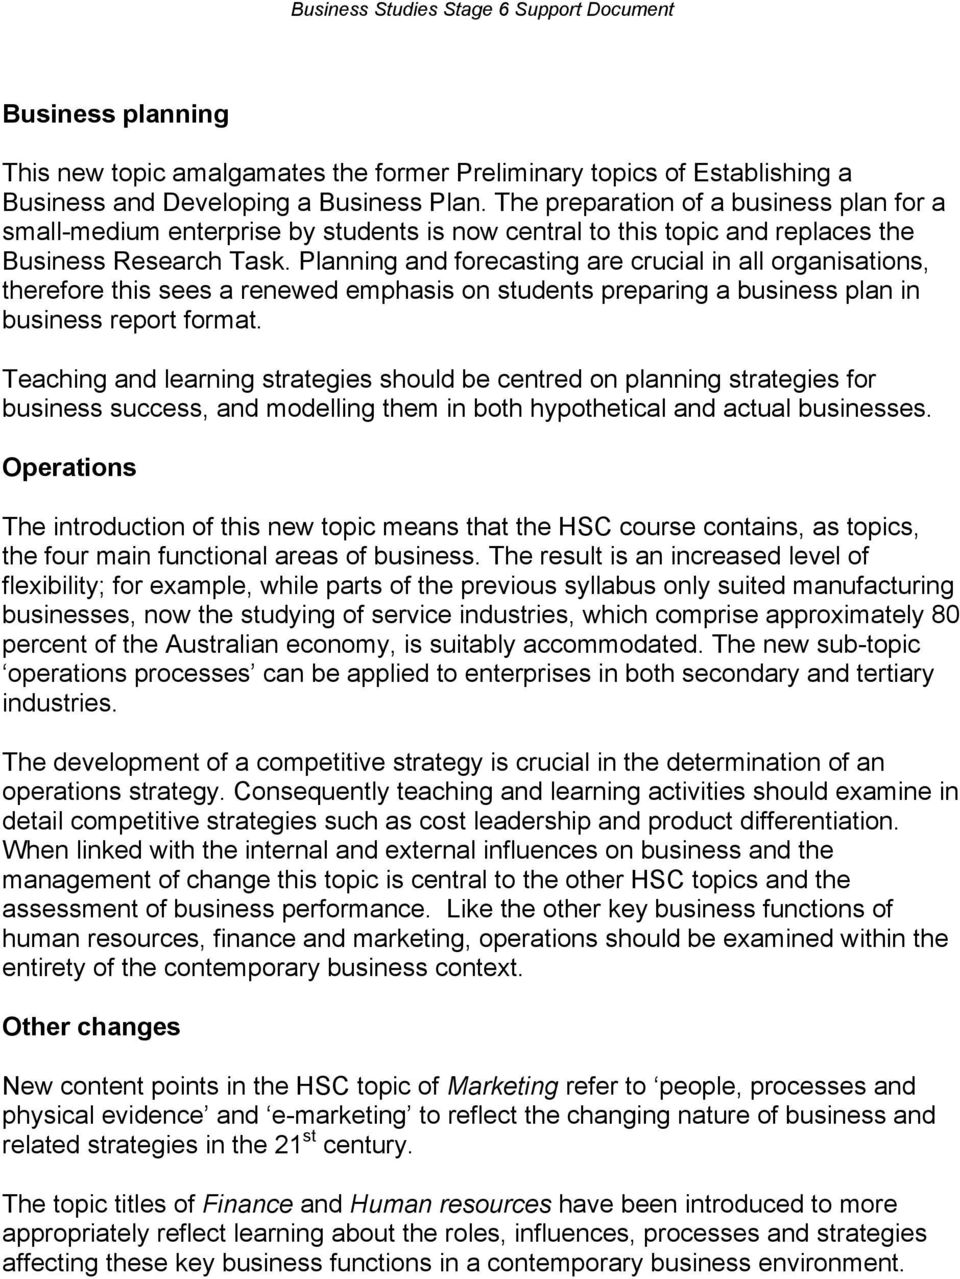 business studies stage 6 support document pdf